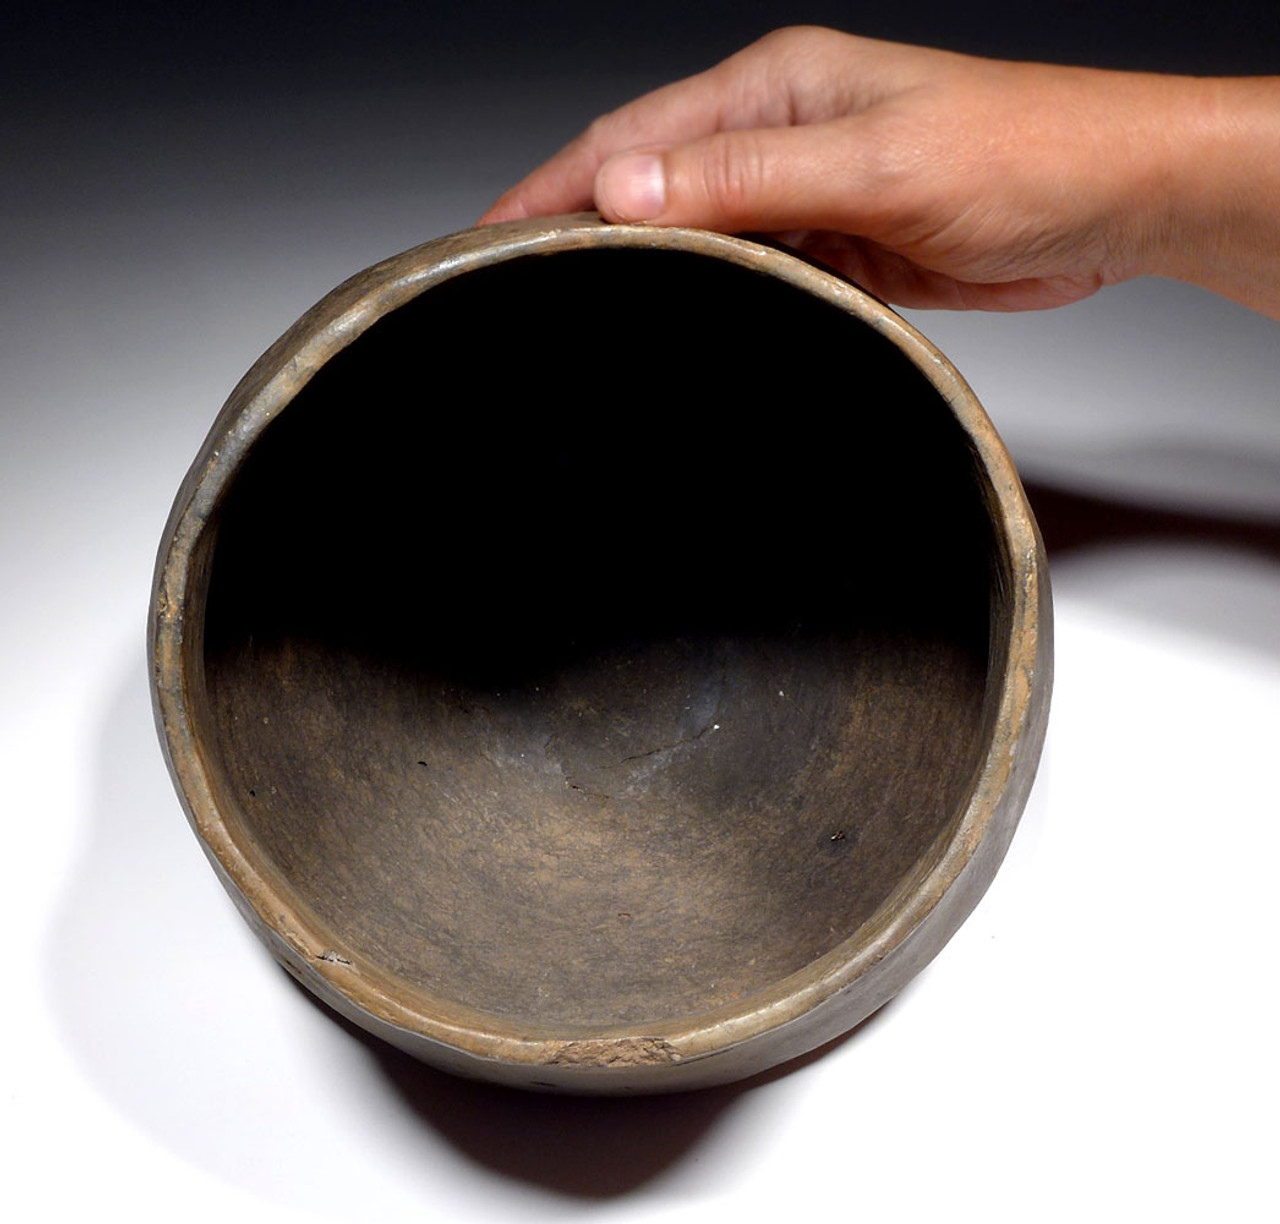 INTACT FLARED EUROPEAN BRONZE AGE CERAMIC URNFIELD VESSEL FROM THE LUSATIAN CULTURE  *URN11